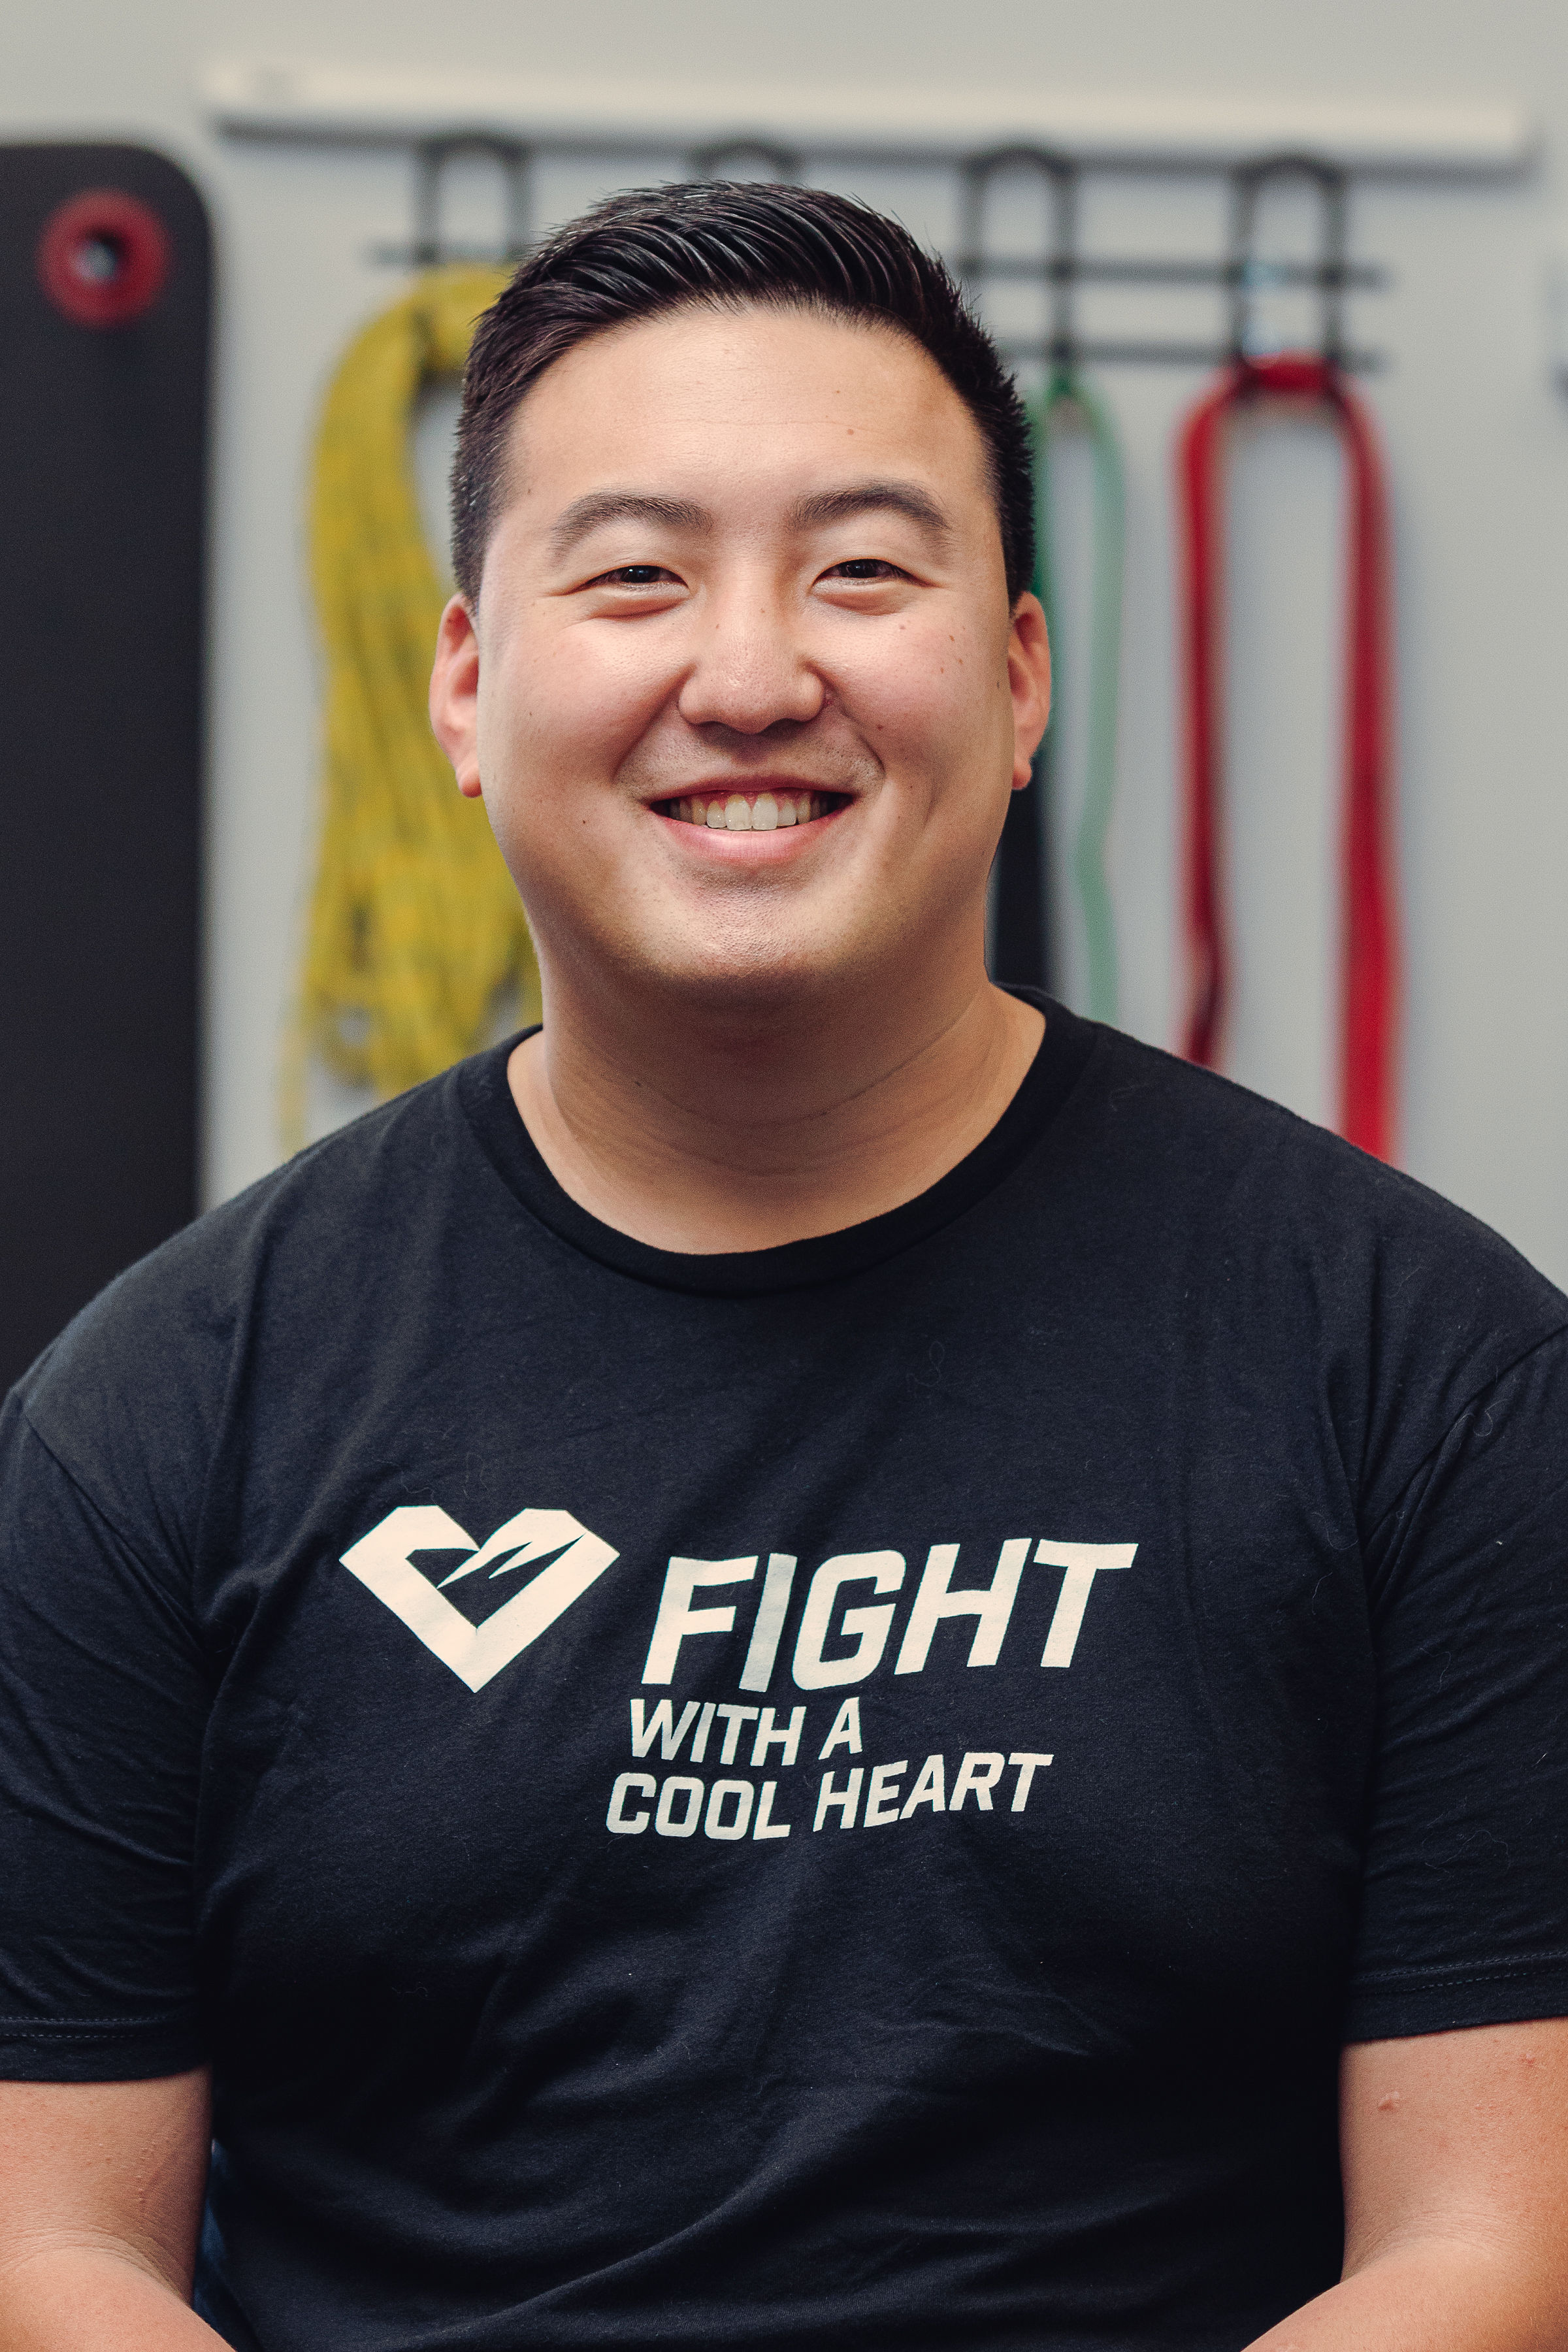 Dr. Jason Park, PT, DPT, SCS - + Doctor of Physical Therapy+ Board-Certified Sports Clinical Specialist+ Sports Performance ConsultantDr. Jason Park earned his Doctorate of Physical Therapy at the University of Southern California (USC). During his time there, Dr. Park had a year-long internship performing Biomechanical Testing and Return-to-Sport training for professional and collegiate athletes returning from ACL injuries. He continued his studies with internships at Kaiser Permanante and Select Physical Therapy prior to completing his Sports Physical Therapy Residency. He founded Cool Heart Performance as a platform to both serve professional athletes and executive clients to achieve their highest potential through strength training, movement re-education, and physical recovery treatments. Cool Heart Performance serves as the official Medical Team for the United States Muay Thai Federation in their Olympic style competition. Dr. Park also lectures on his approach to sports medicine & performance in the professional sports and combat sports world.Dr. Park also brings 10 years of Sports Performance and 16 years of Muay Thai experience to Cool Heart Performance. He has been a driving force to combine the philosophies of physical therapy, strength & conditioning, and recovery into one complete package for his athletes and clients. He believes that a comprehensive approach to human performance is required to allow people to achieve their goals without increasing their risk for injury or plateau.Dr. Park has been training professional Muay Thai and MMA athletes from Boxing Works and Blackhouse MMA for the past 8 years. He believes in creating a strong foundation based in technique and understanding of their position in the ring to create an advantage over the fighter's opponents. Dr. Park has had the honor to join the SpiderKick team as a Muay Thai coach and Sports Physical Therapist for Anderson Silva.